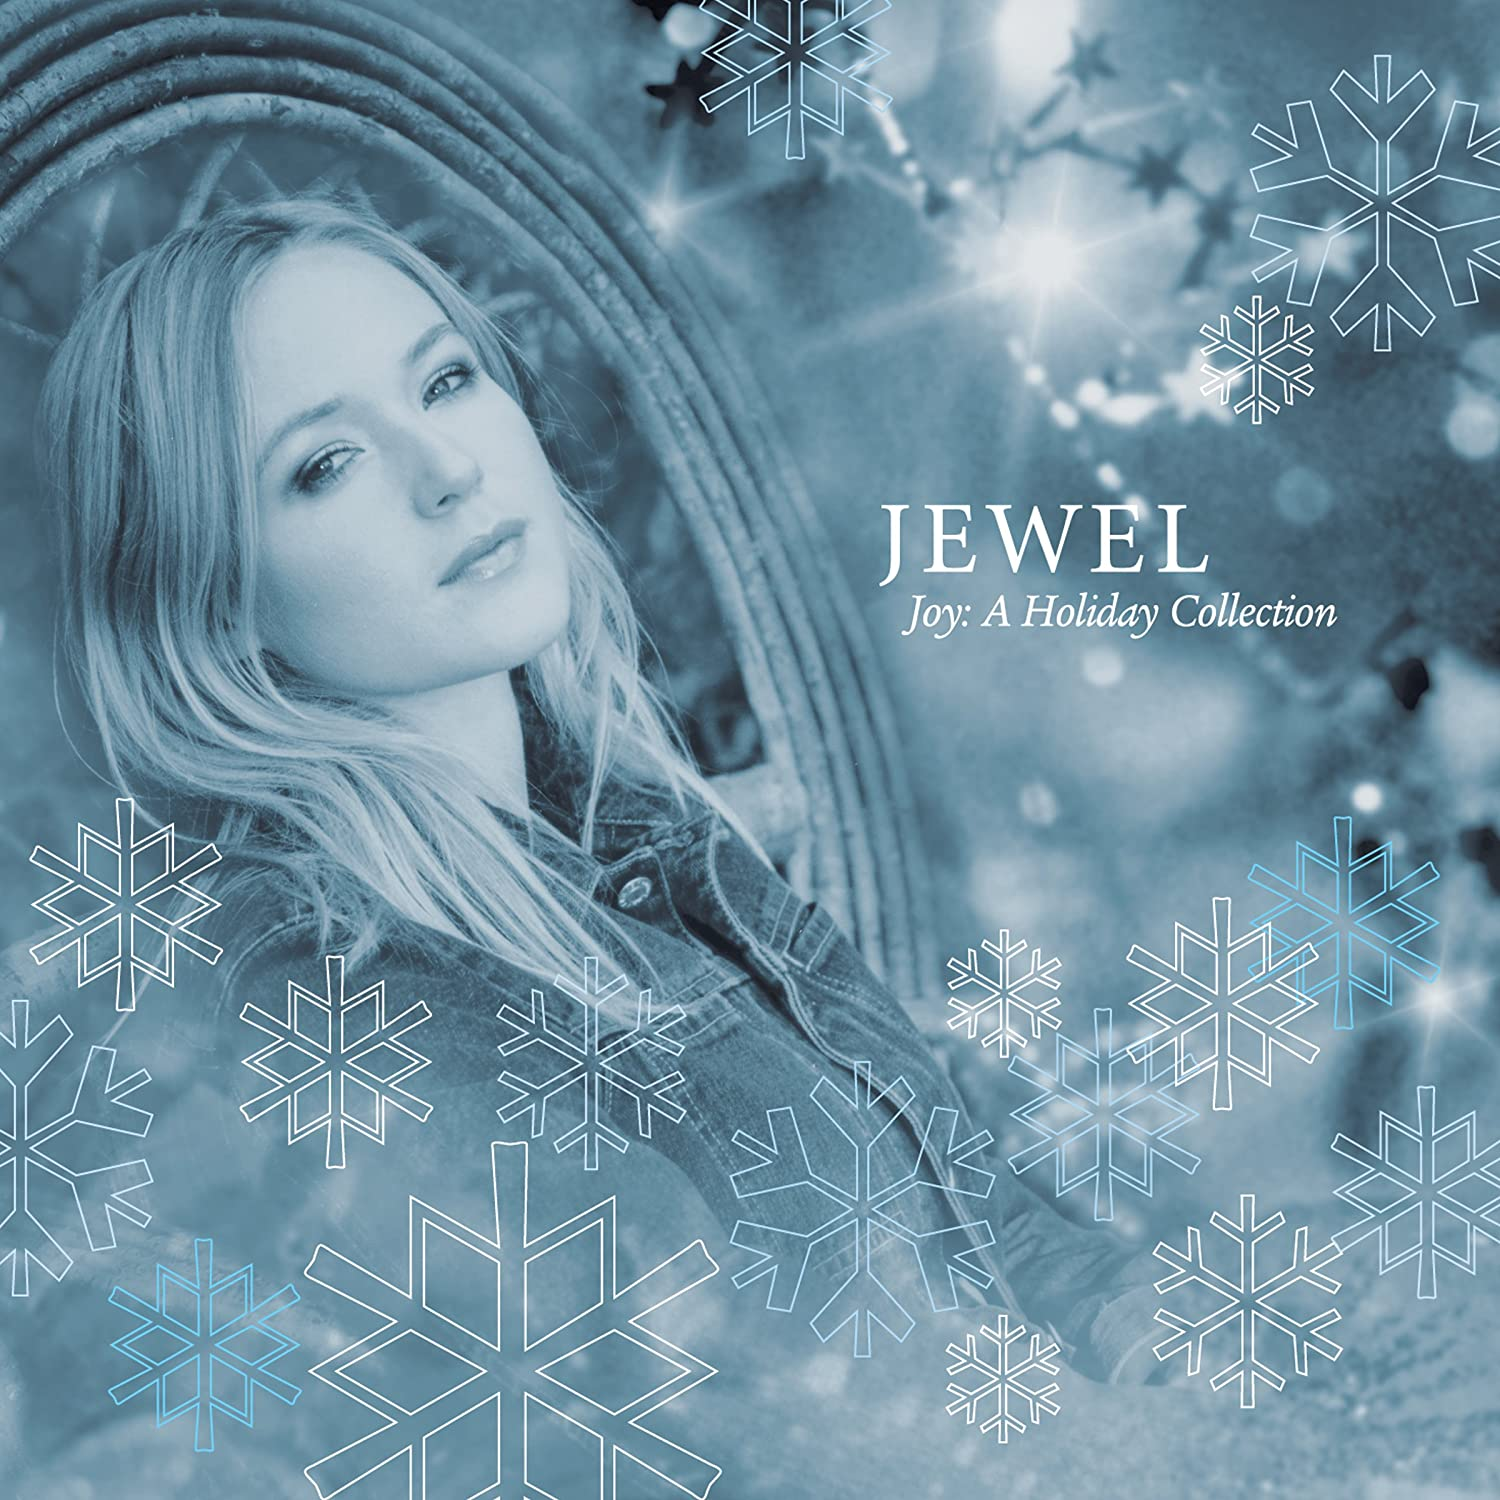 Jewel - Joy: A Holiday Collection - Amazon.com Music